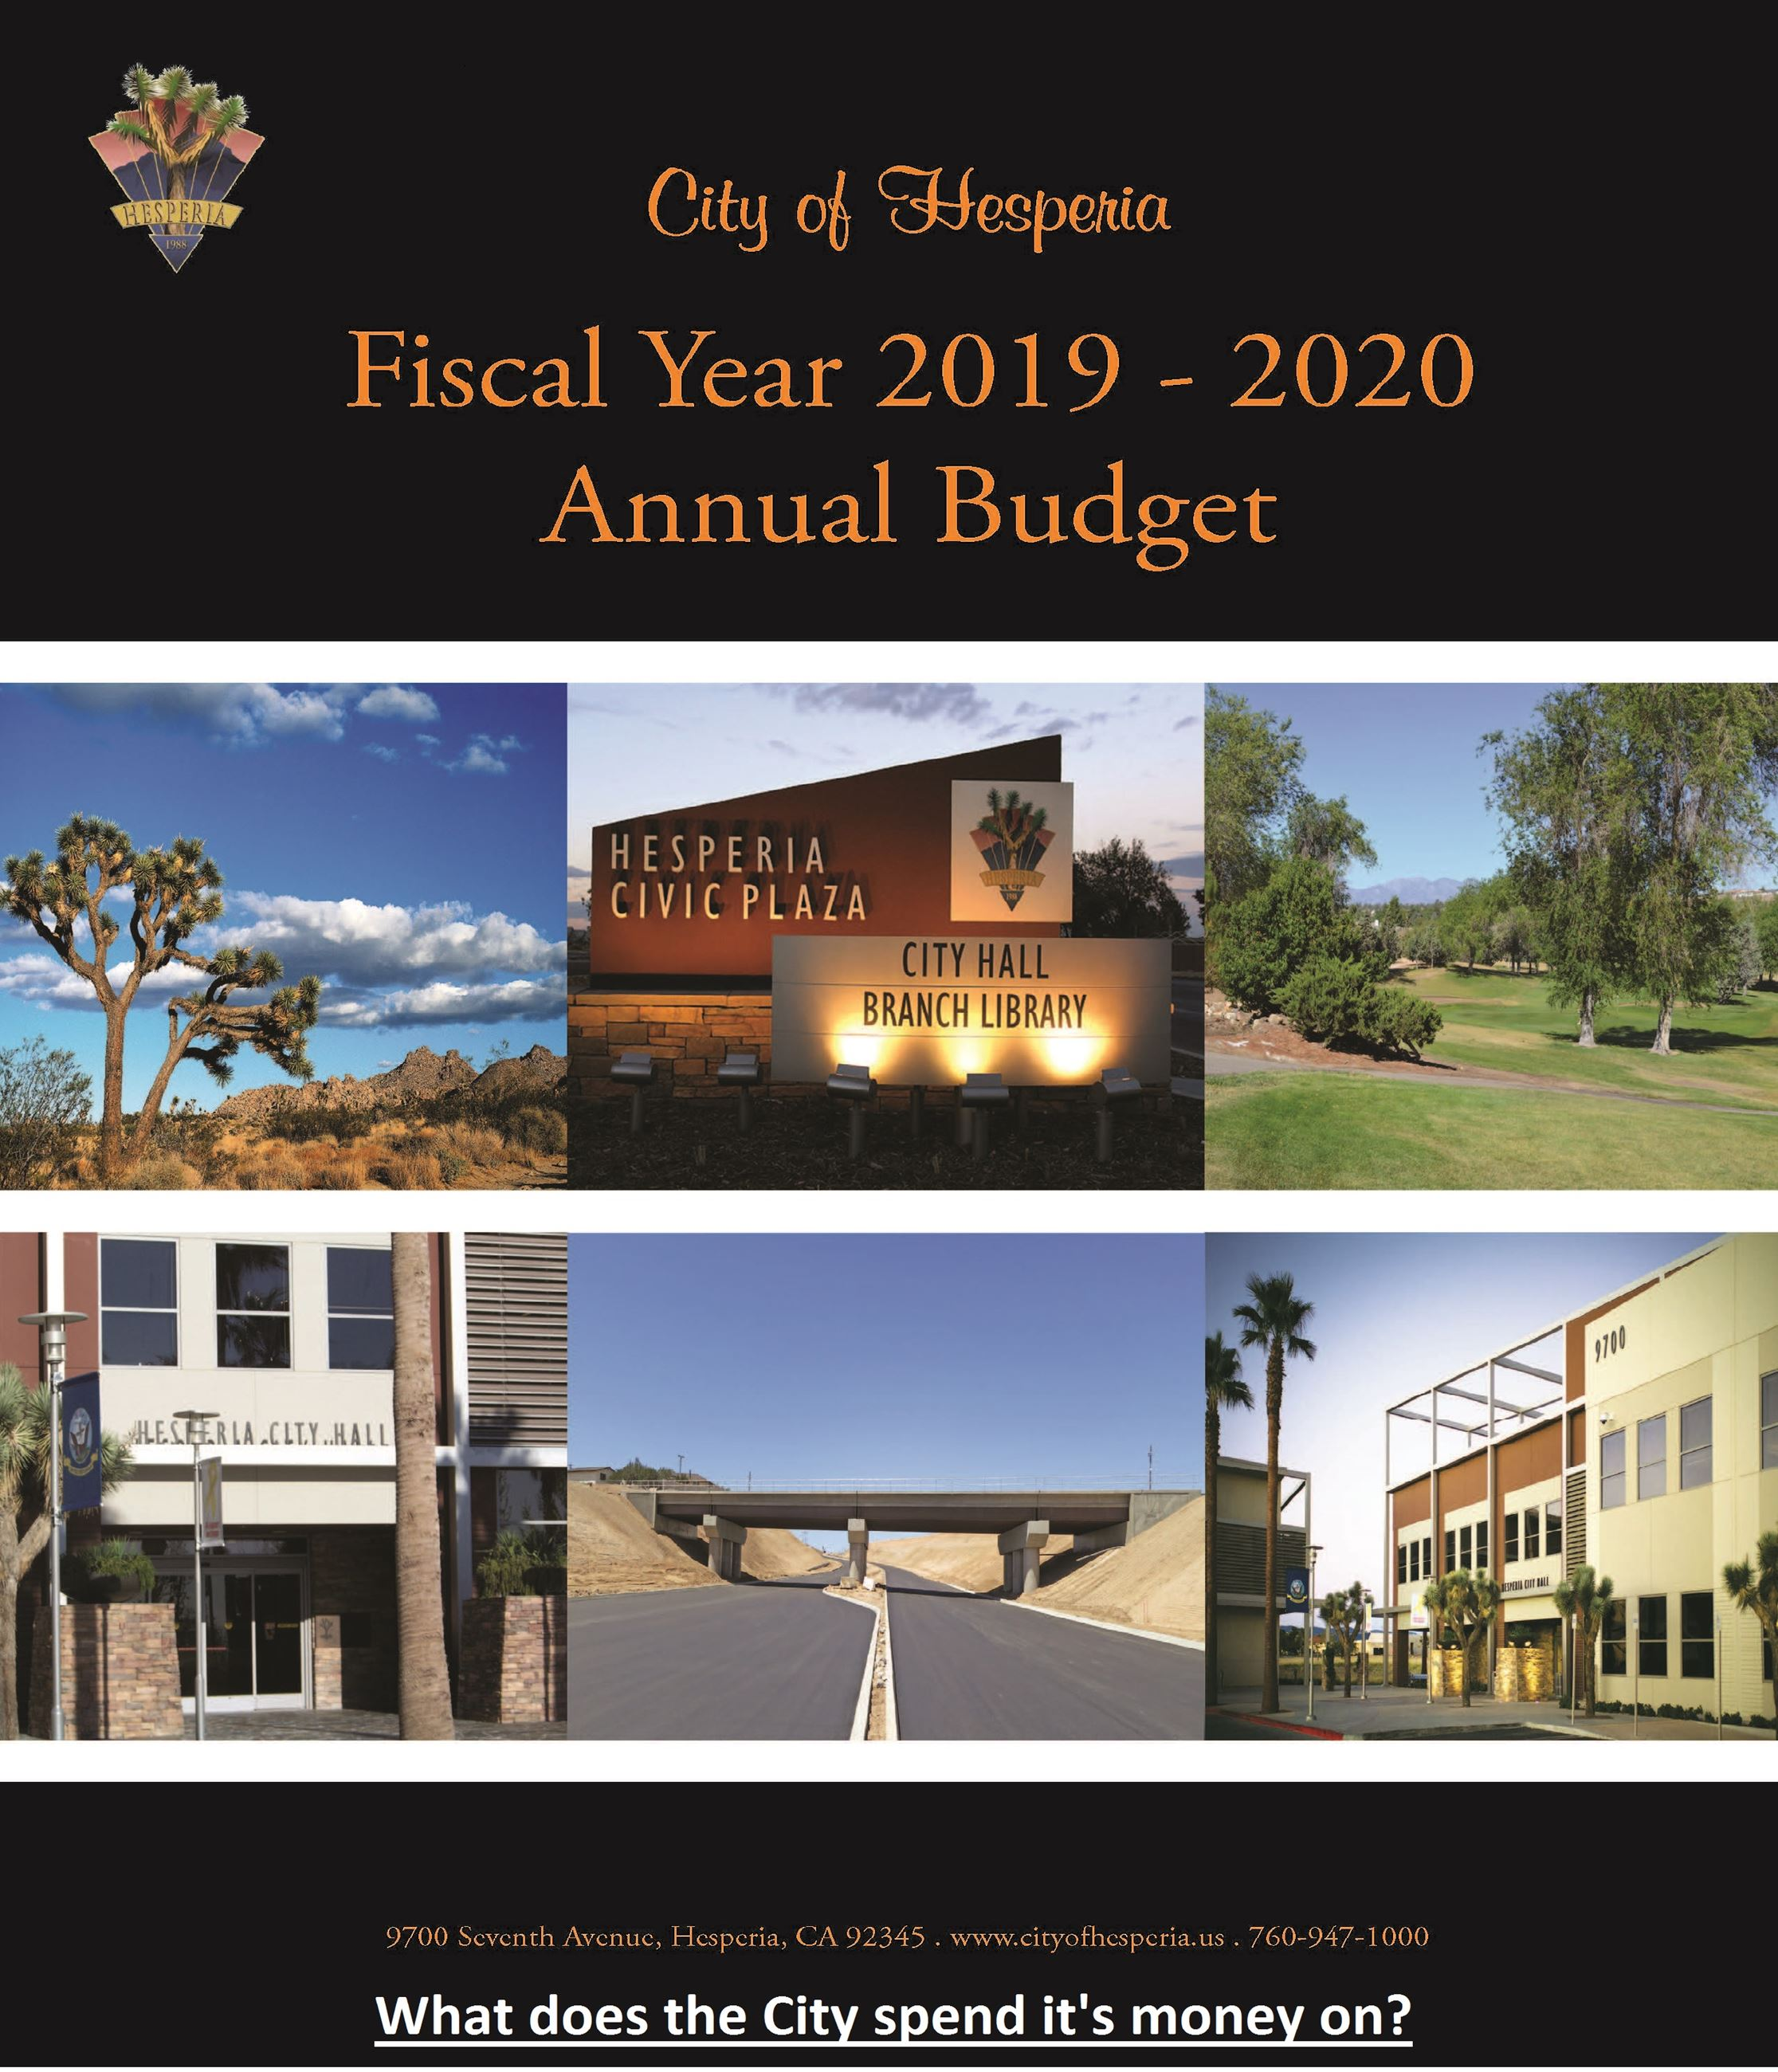 Fiscal Year 2019-20 Annual Budget